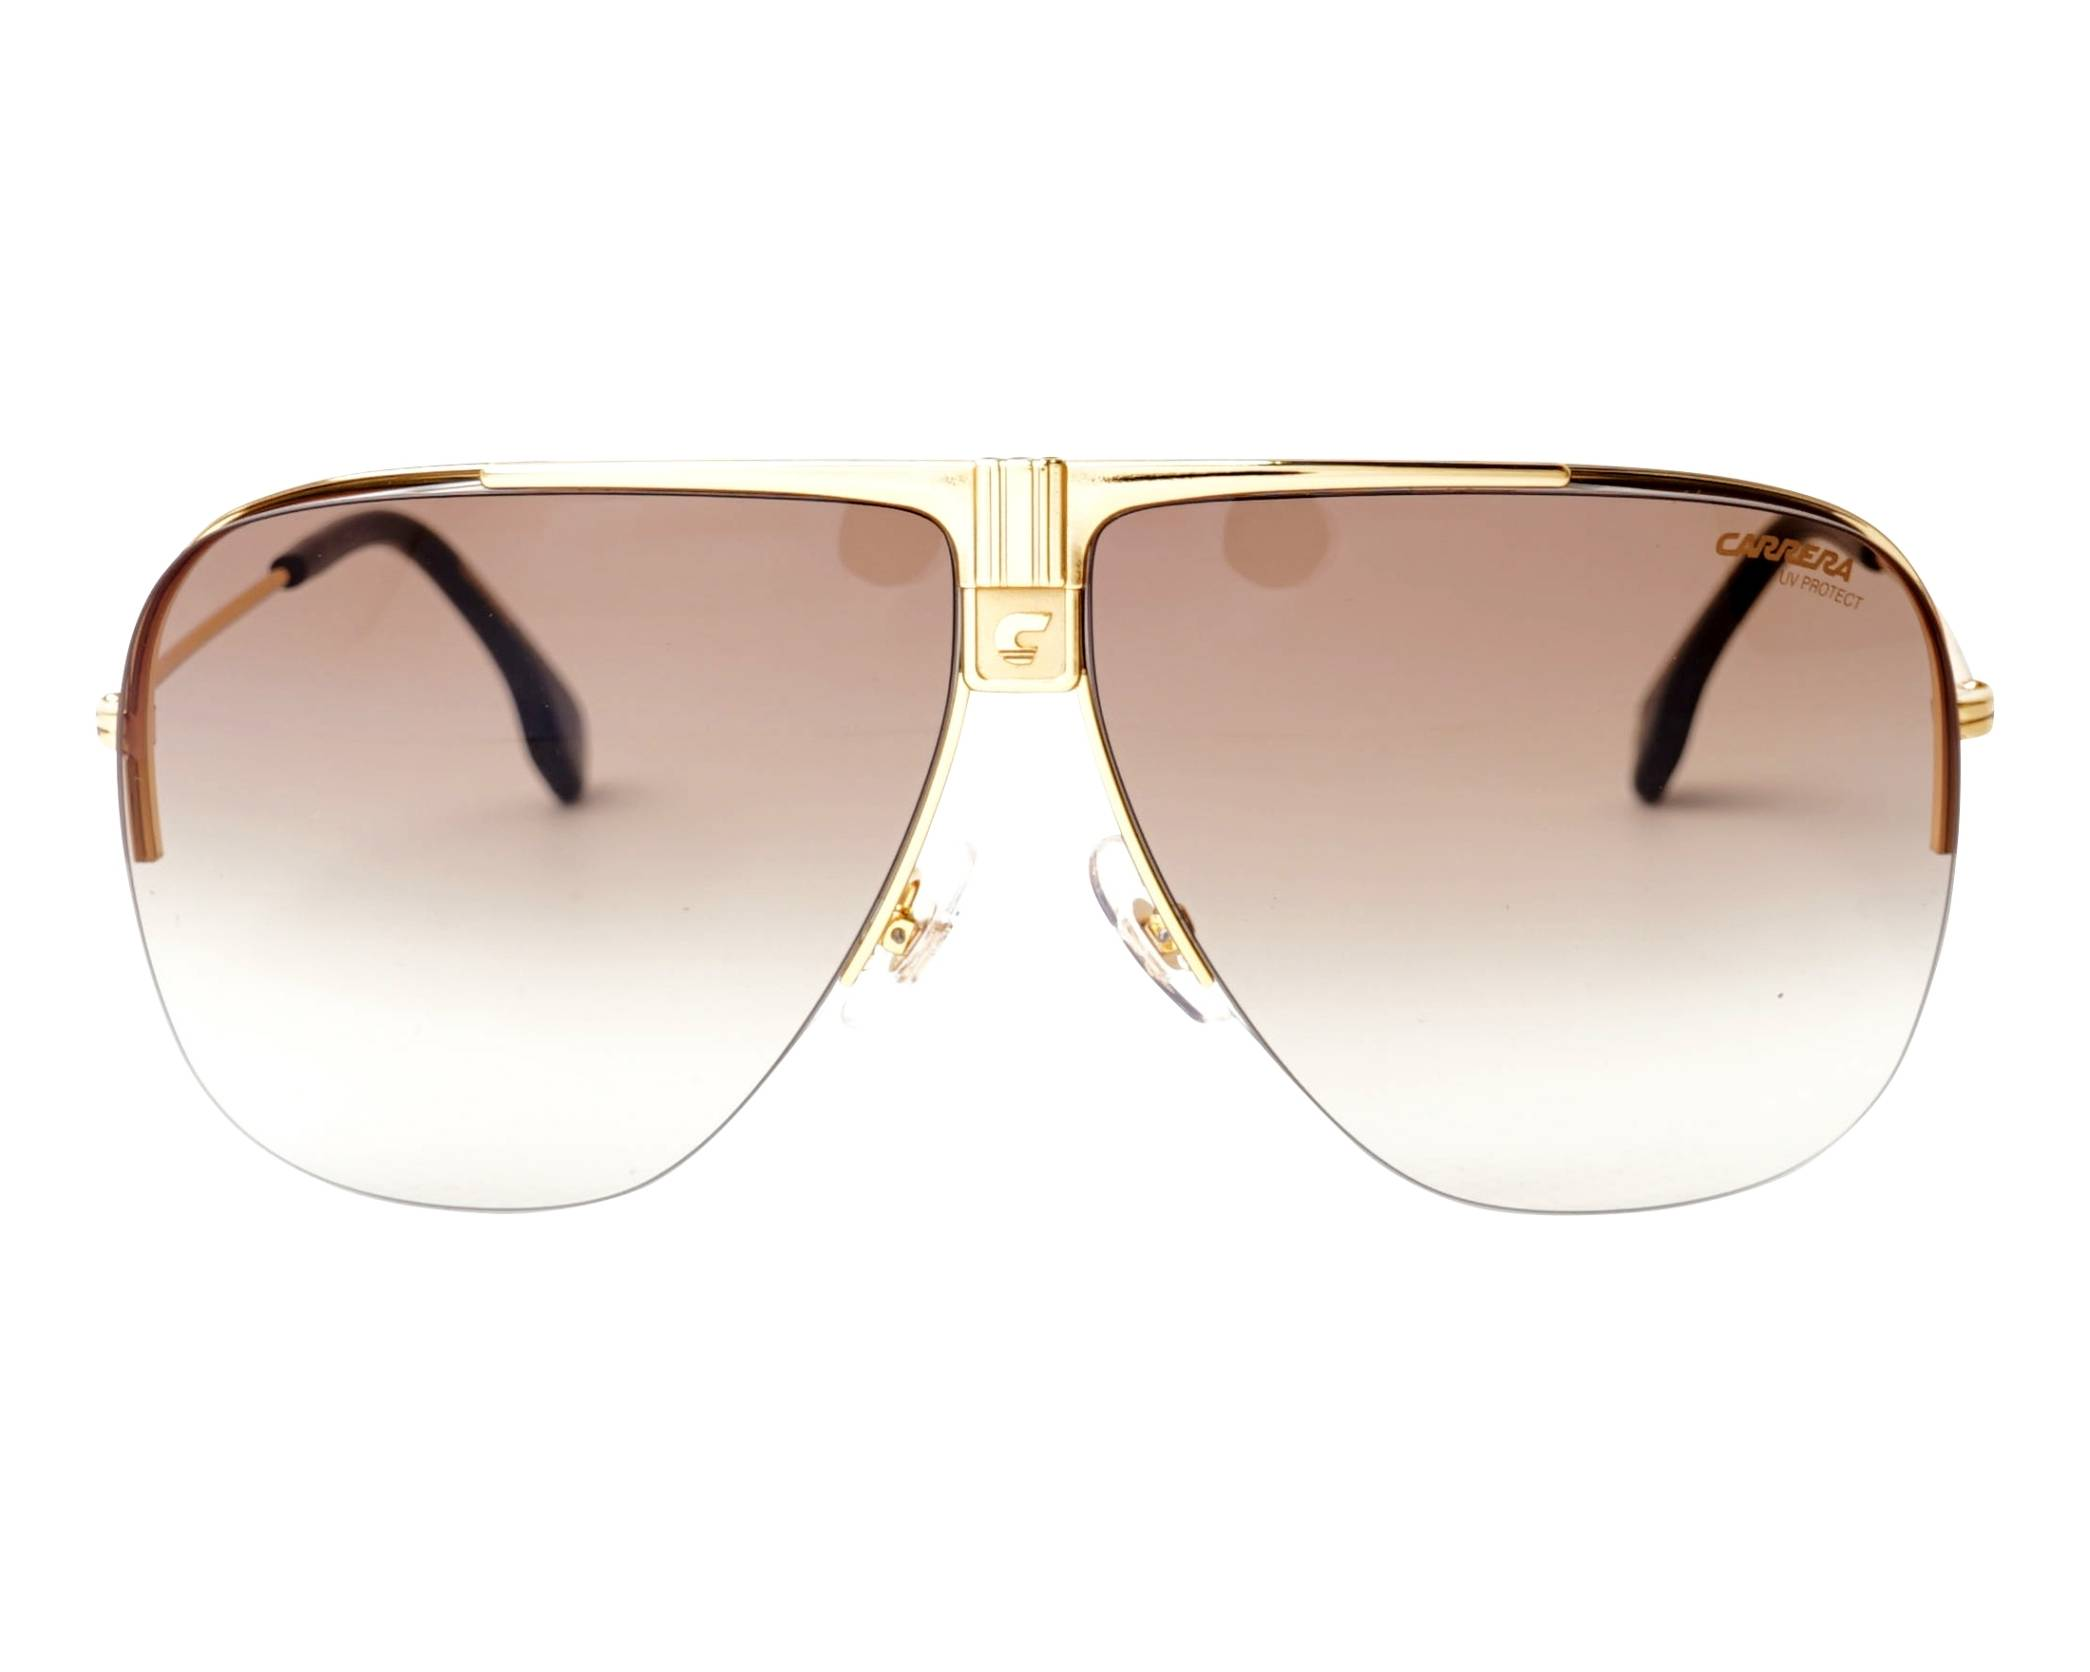 4be5ac3397 Sunglasses Carrera 1013-S 00186 64-9 Gold front view